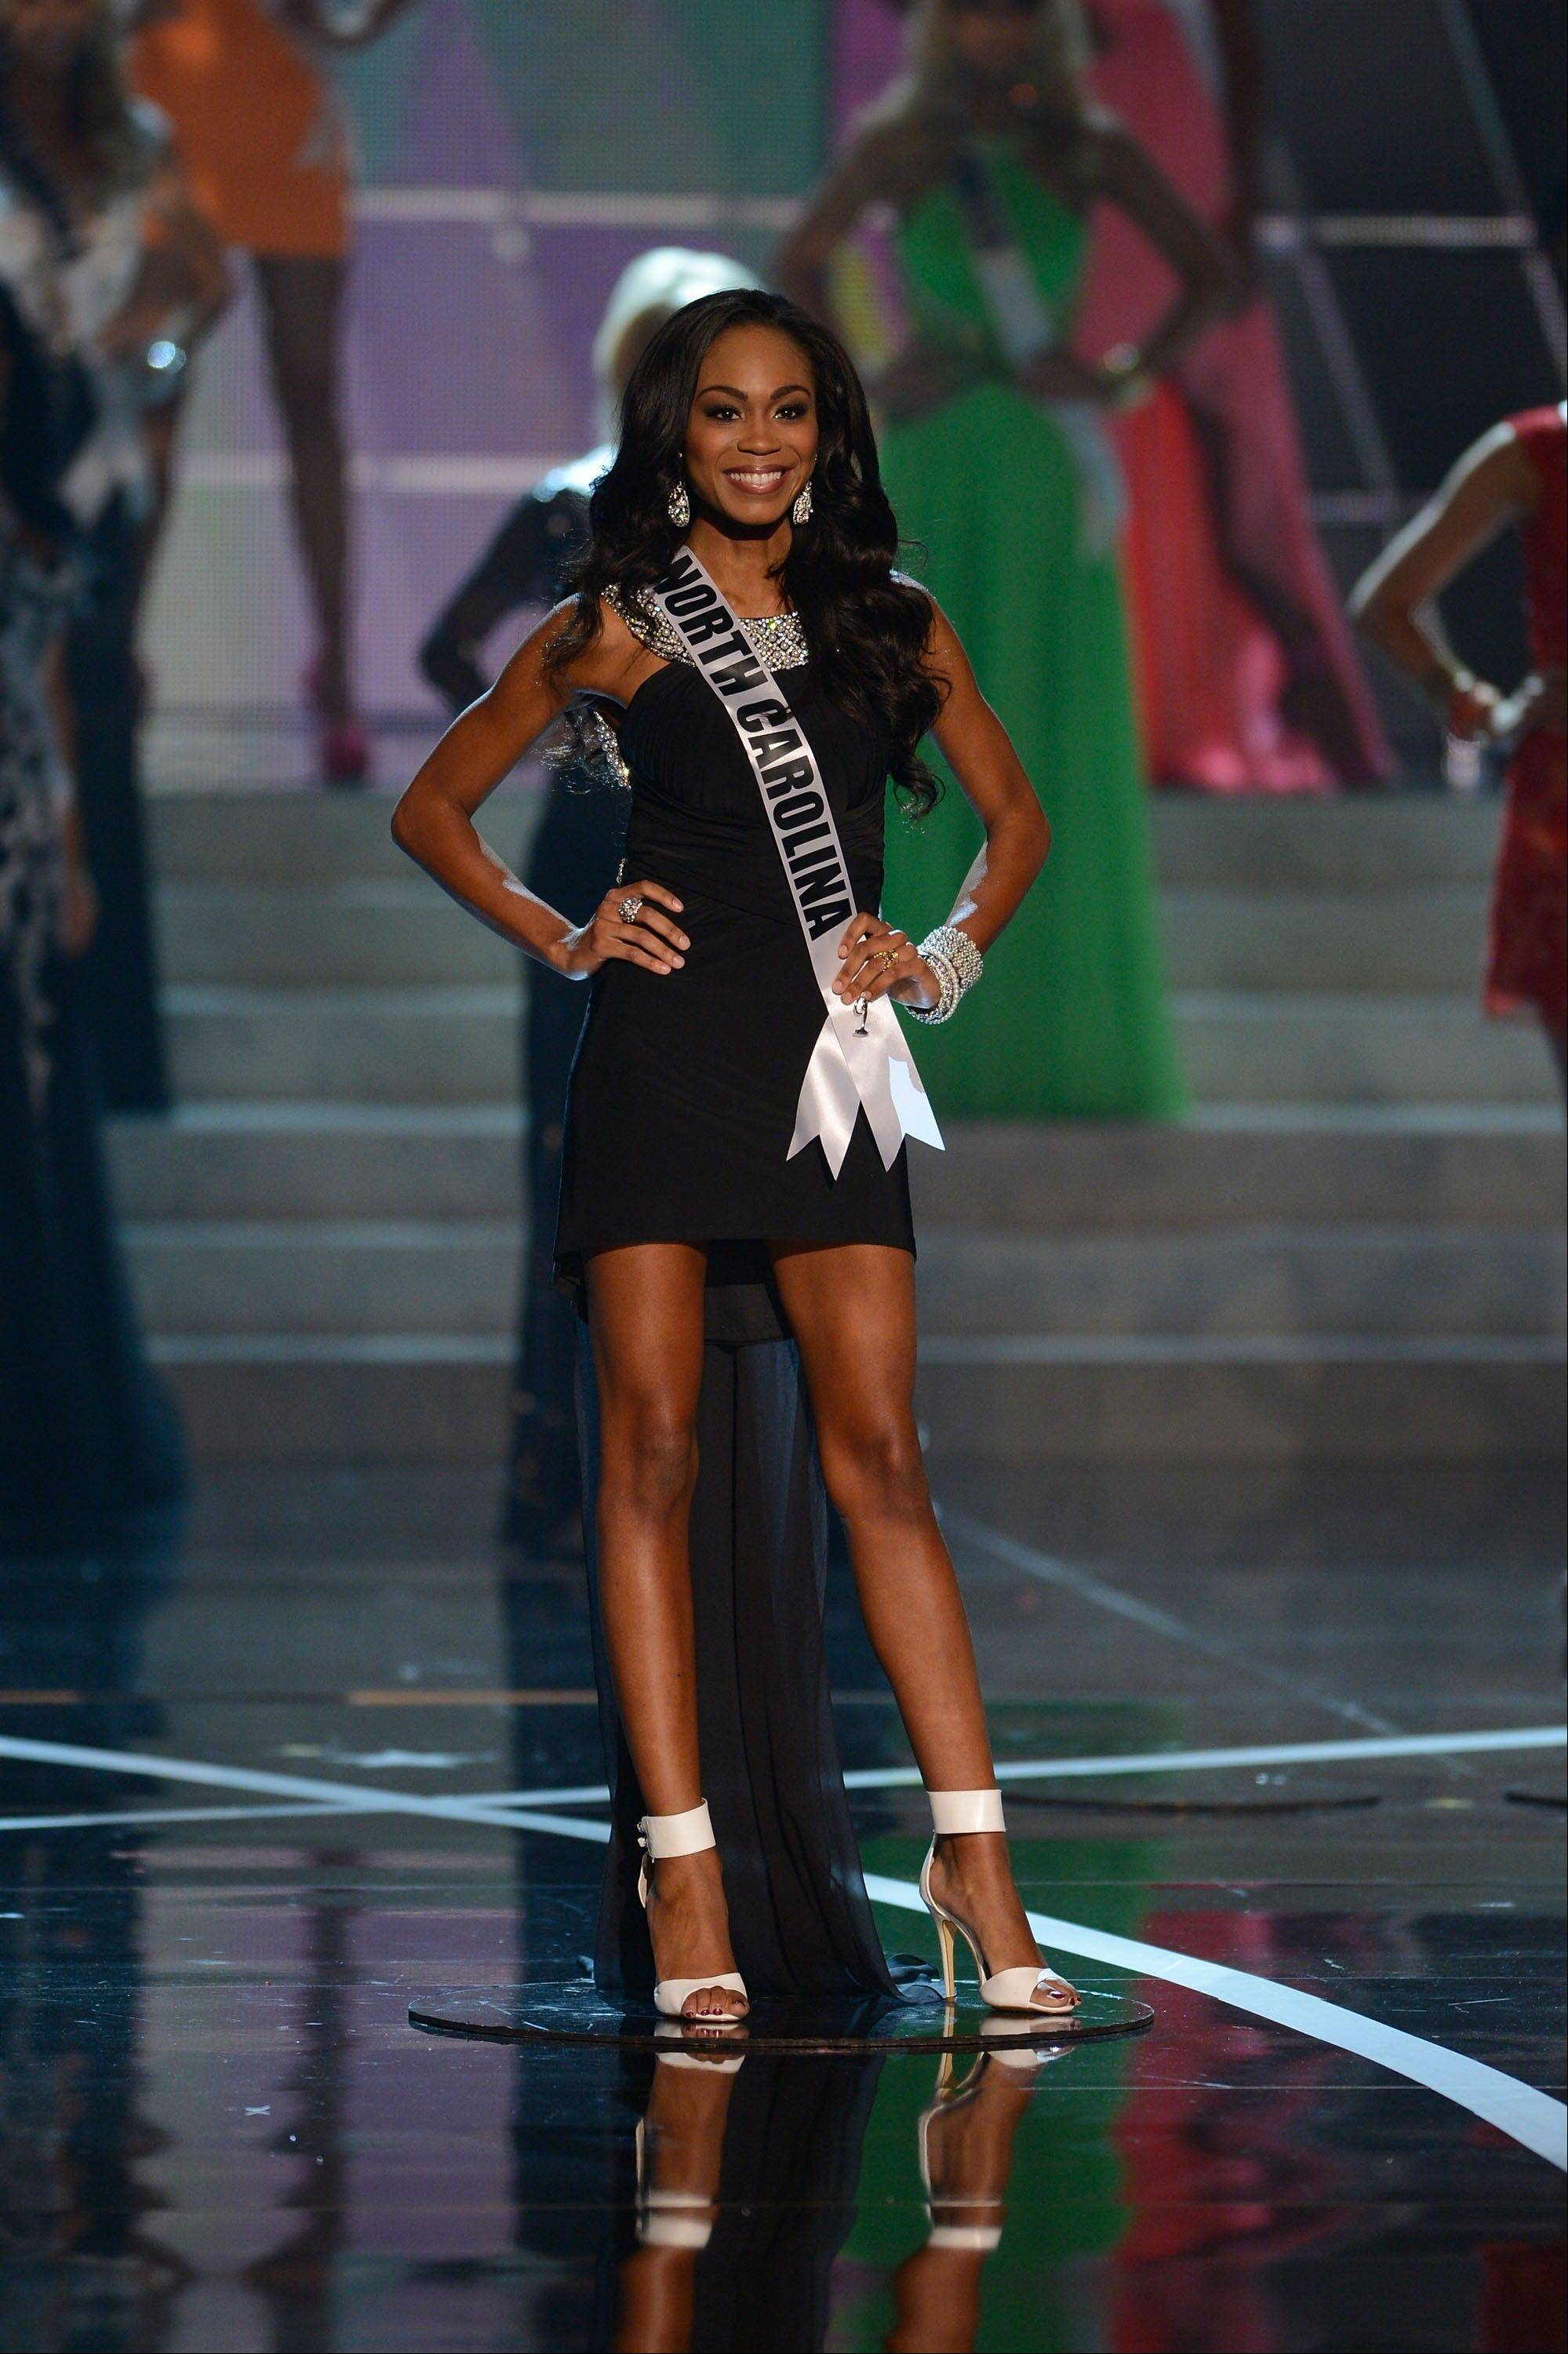 Miss North Carolina Ashley Mills, from Raleigh, N.C,, walks the runway during the introductions of the Miss USA 2013 pageant, Sunday, June 16, 2013, in Las Vegas.